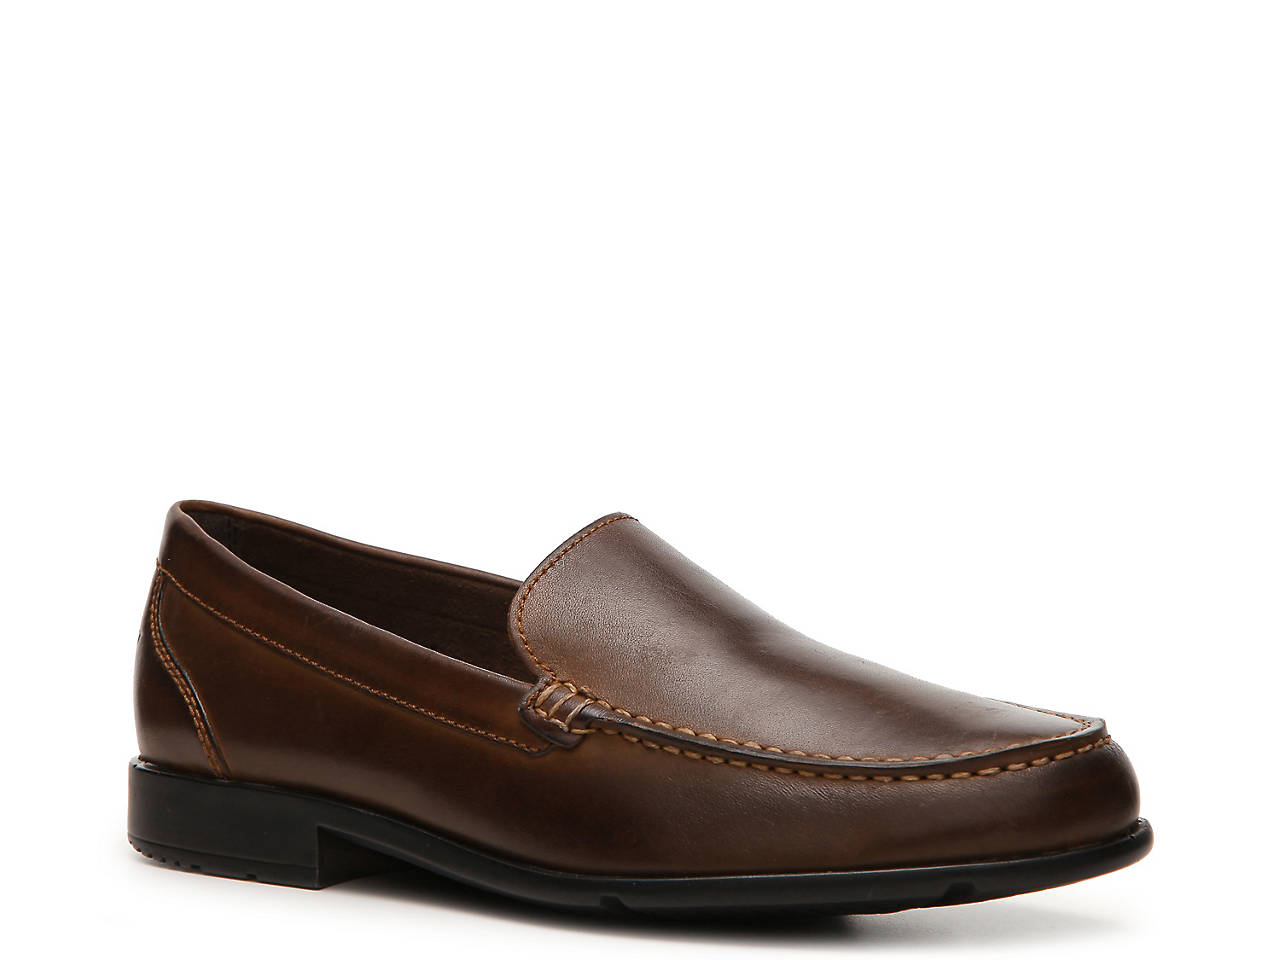 Classic Venetian Loafer